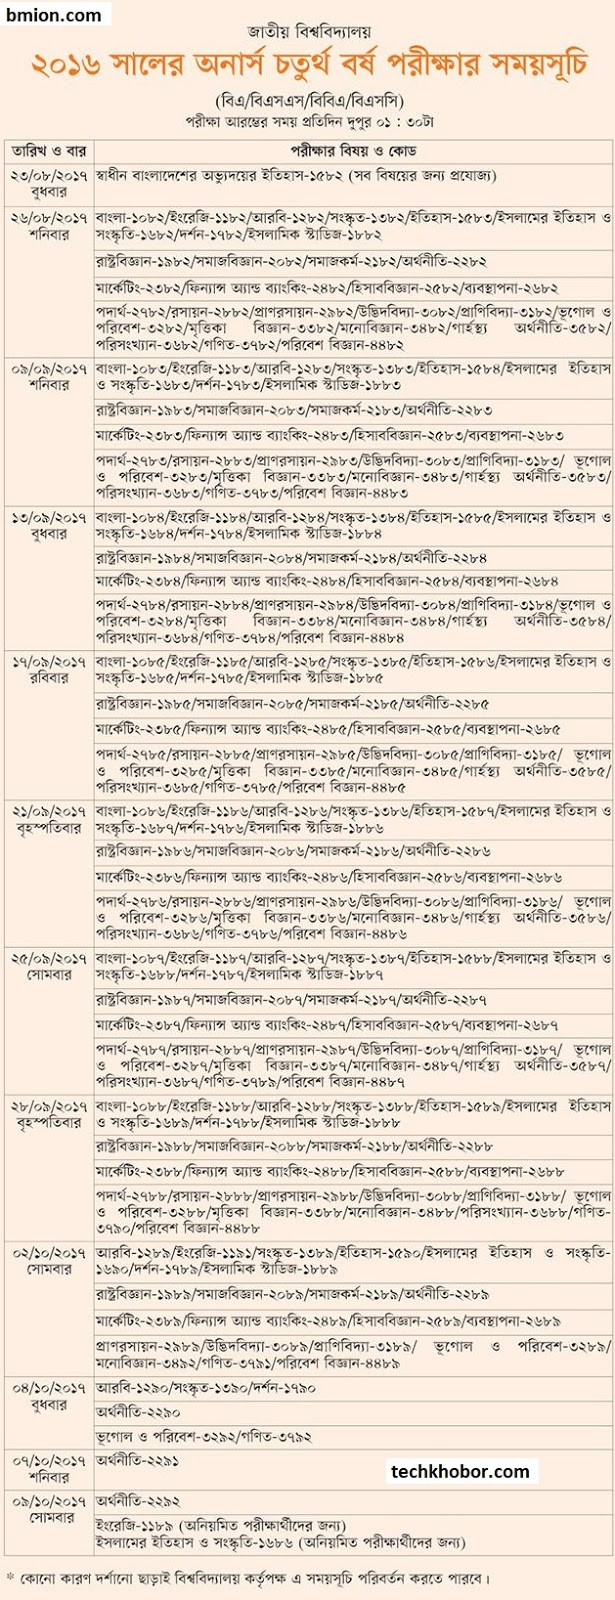 National-University-Honors-4th-Year-Exam-2016-Routine-Honors-Final-Routine